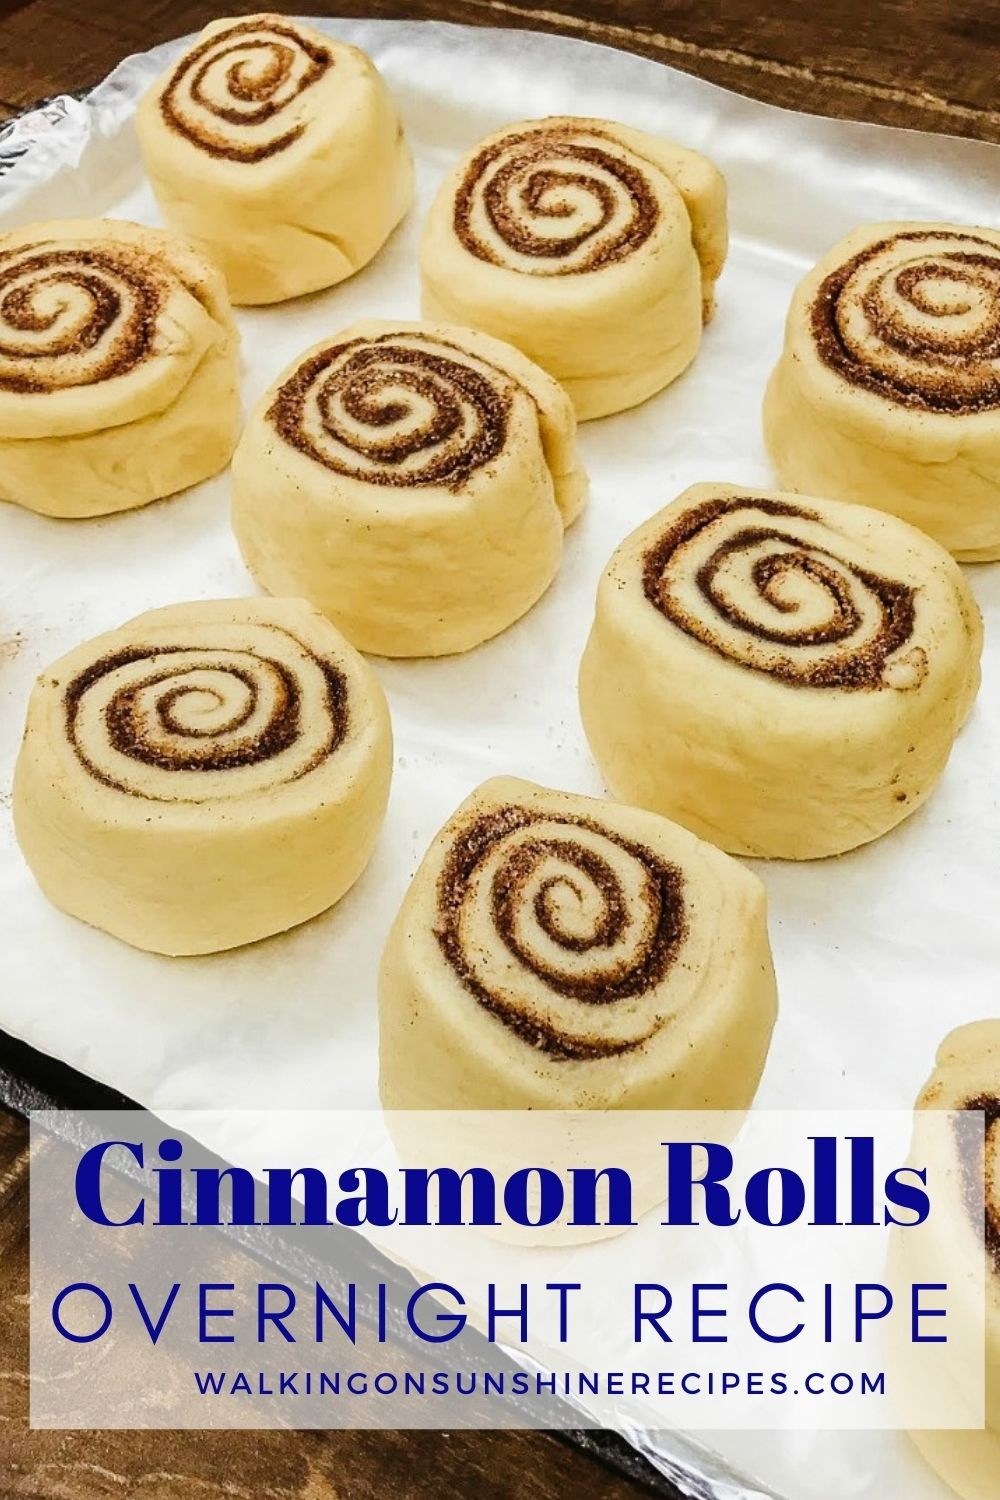 cinnamon rolls on baking tray ready for oven.